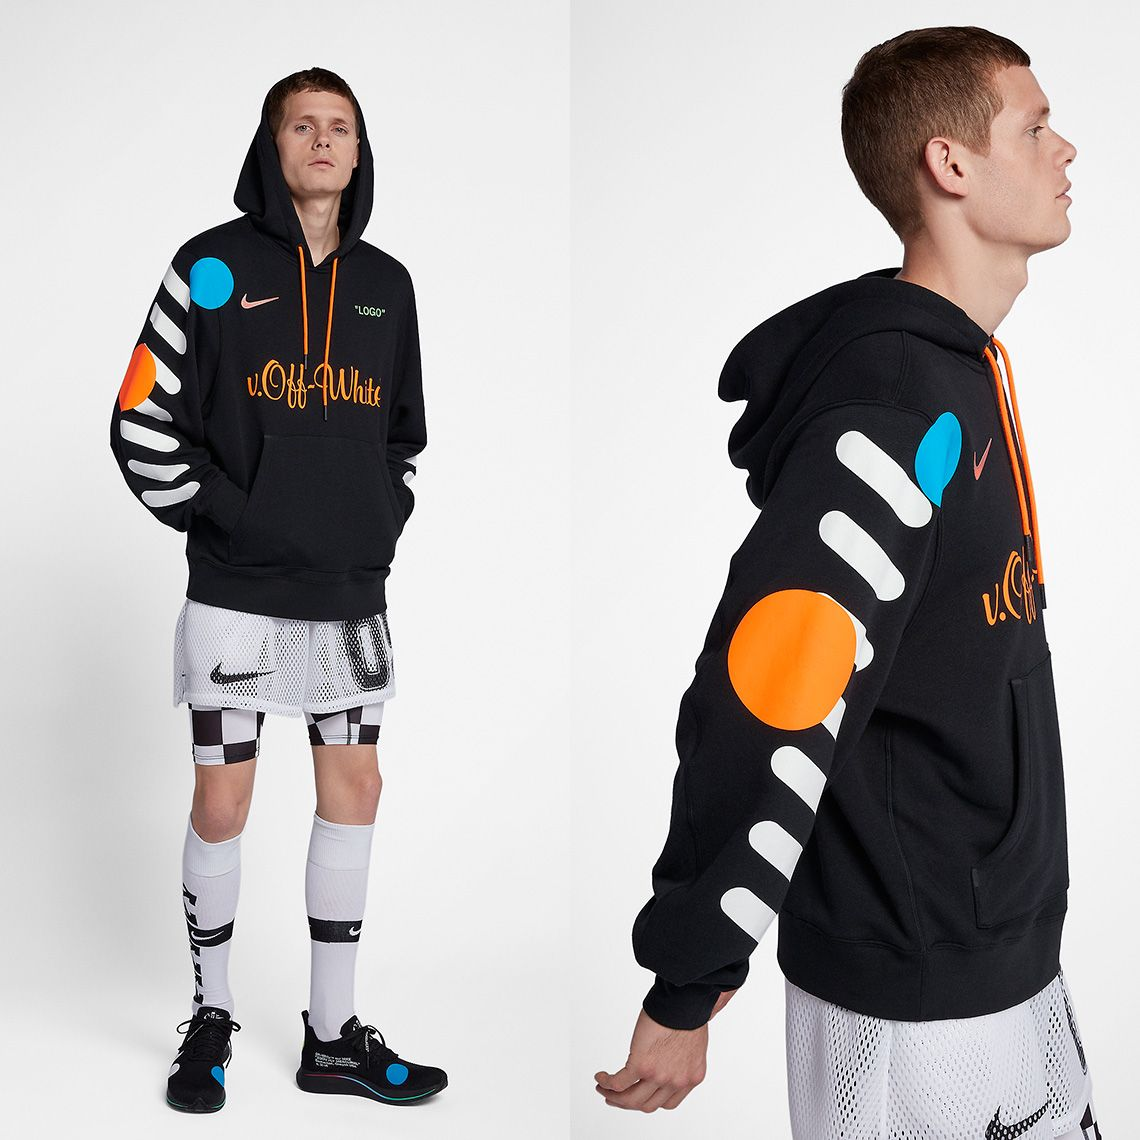 Dólar Menagerry Traducción  OFF WHITE Nike Football Apparel Release Info   SneakerNews.com   Hoodies  men, Football outfits, Hoodies